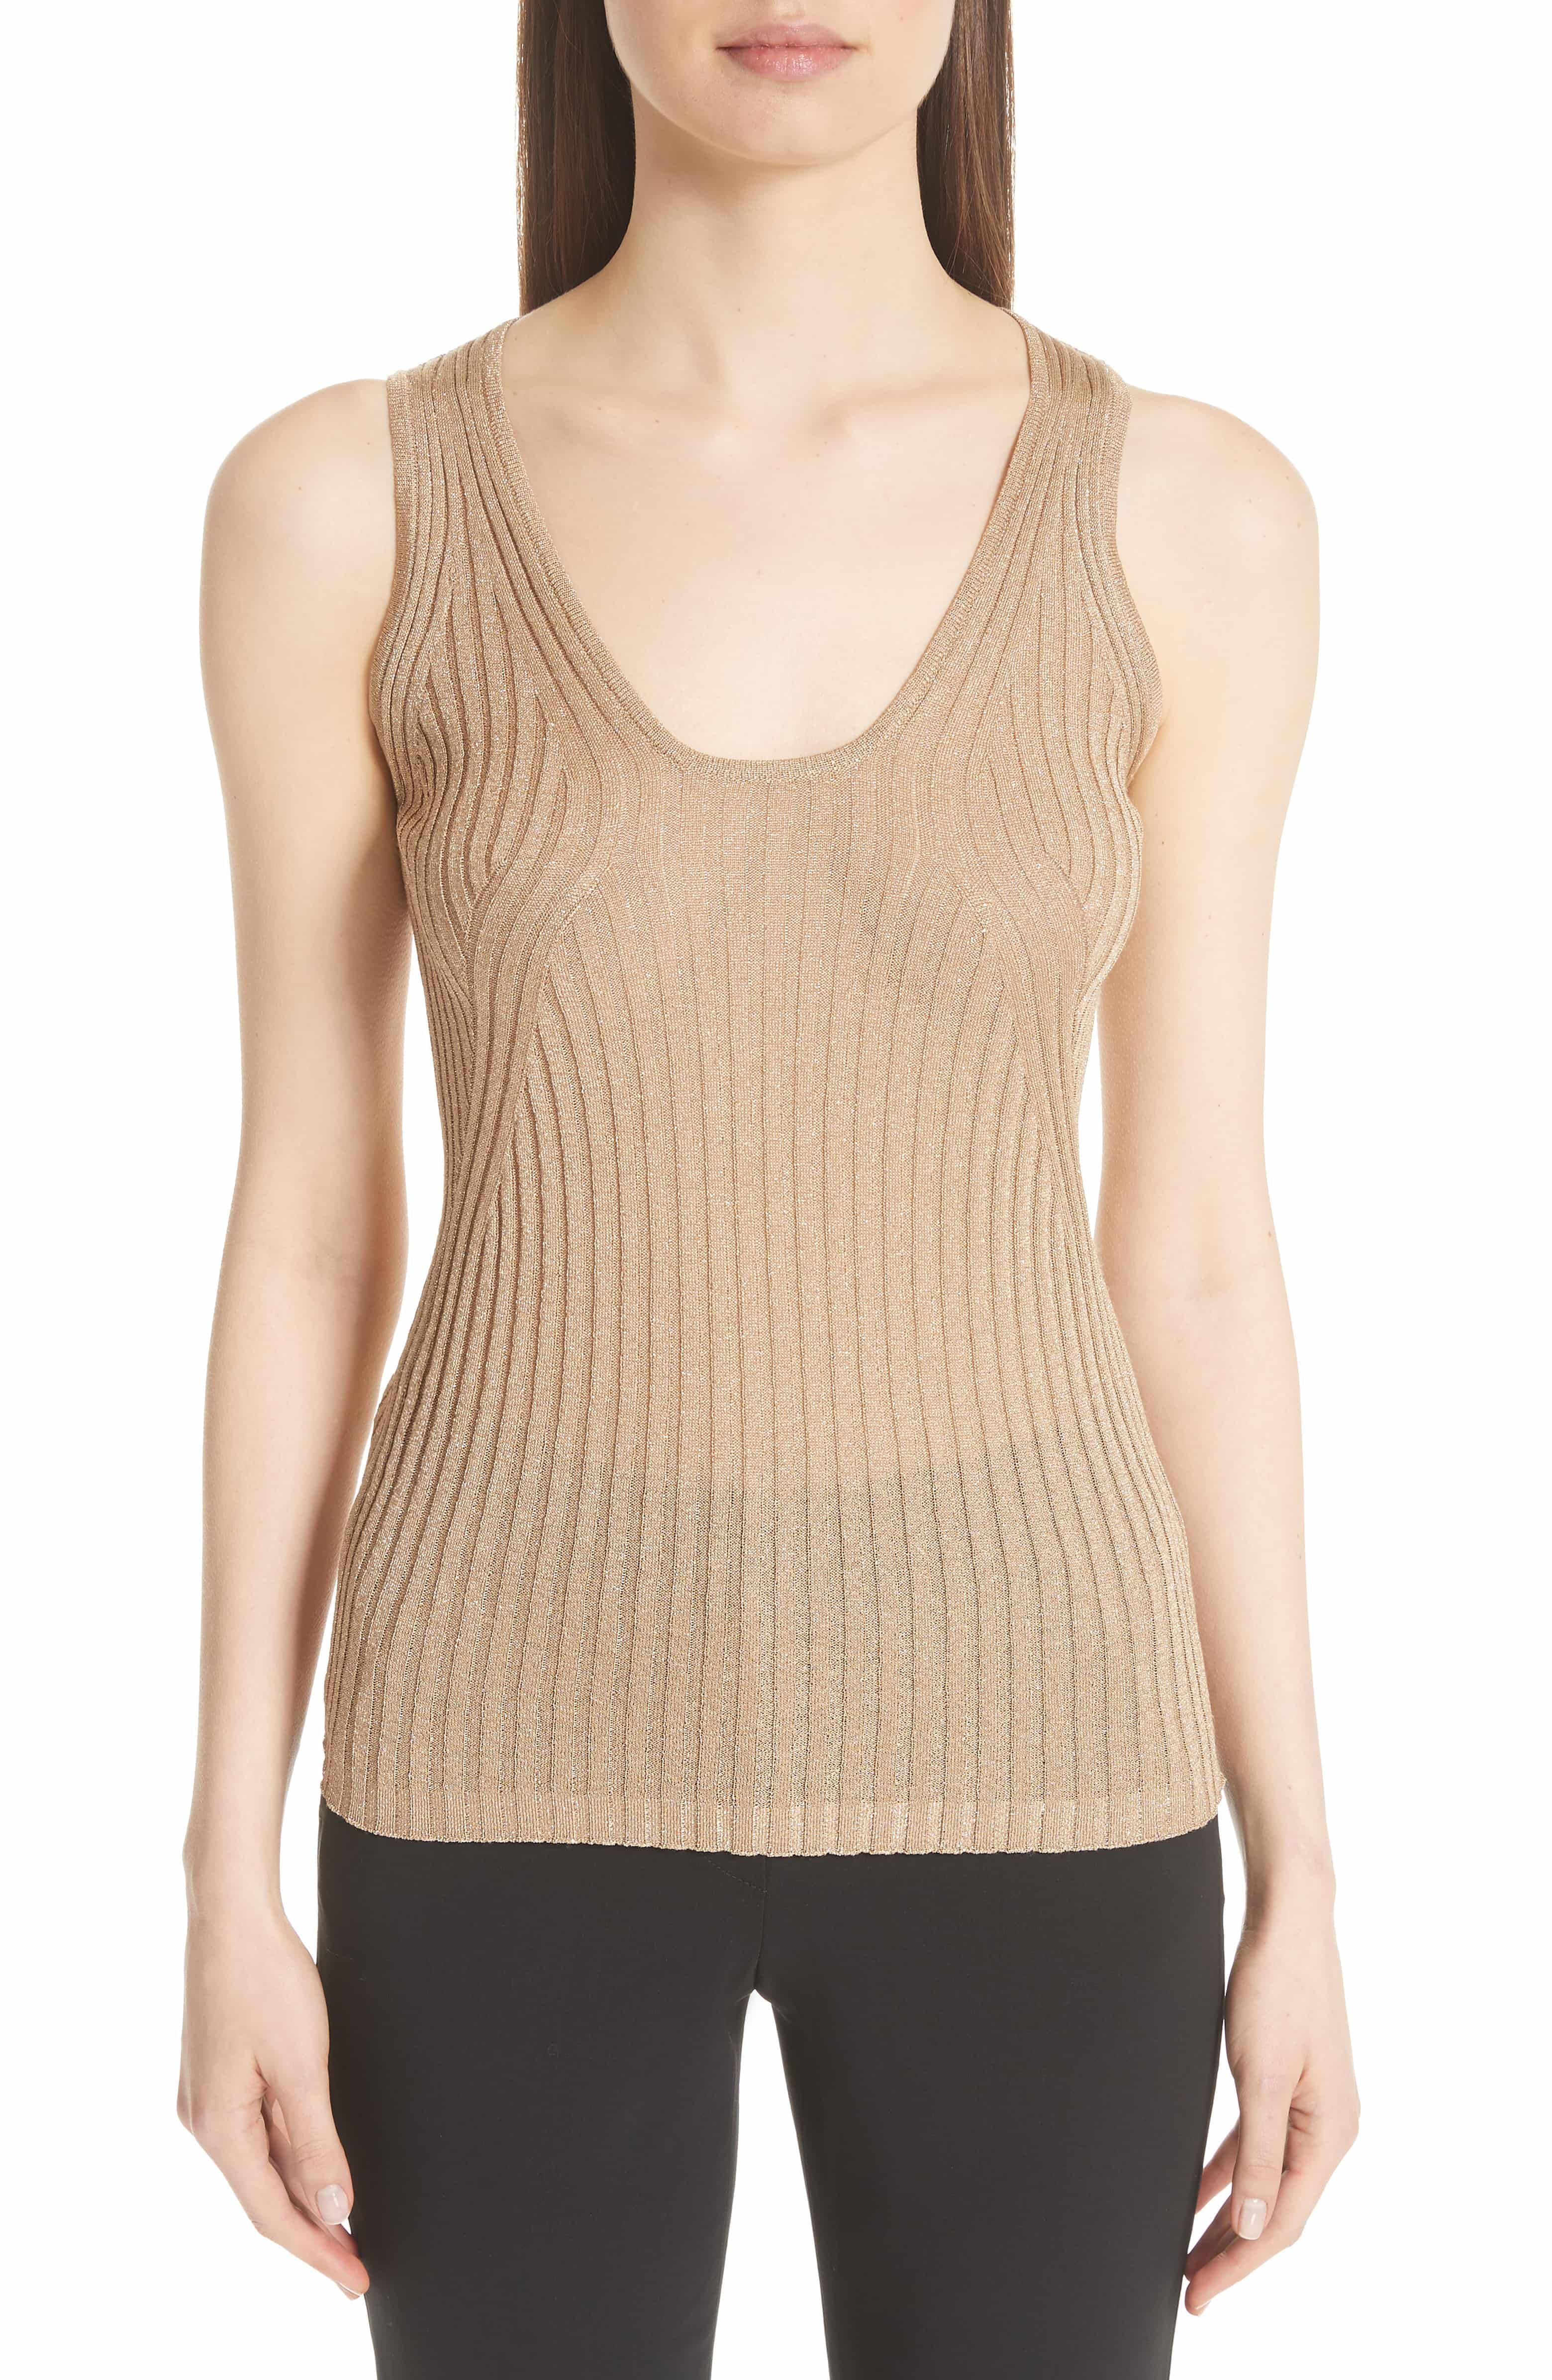 c8d41e7ca Tank tops for women casual style. #tanktops #tank #tanktopoutfits  #tanktopoutfitsfallsweaters